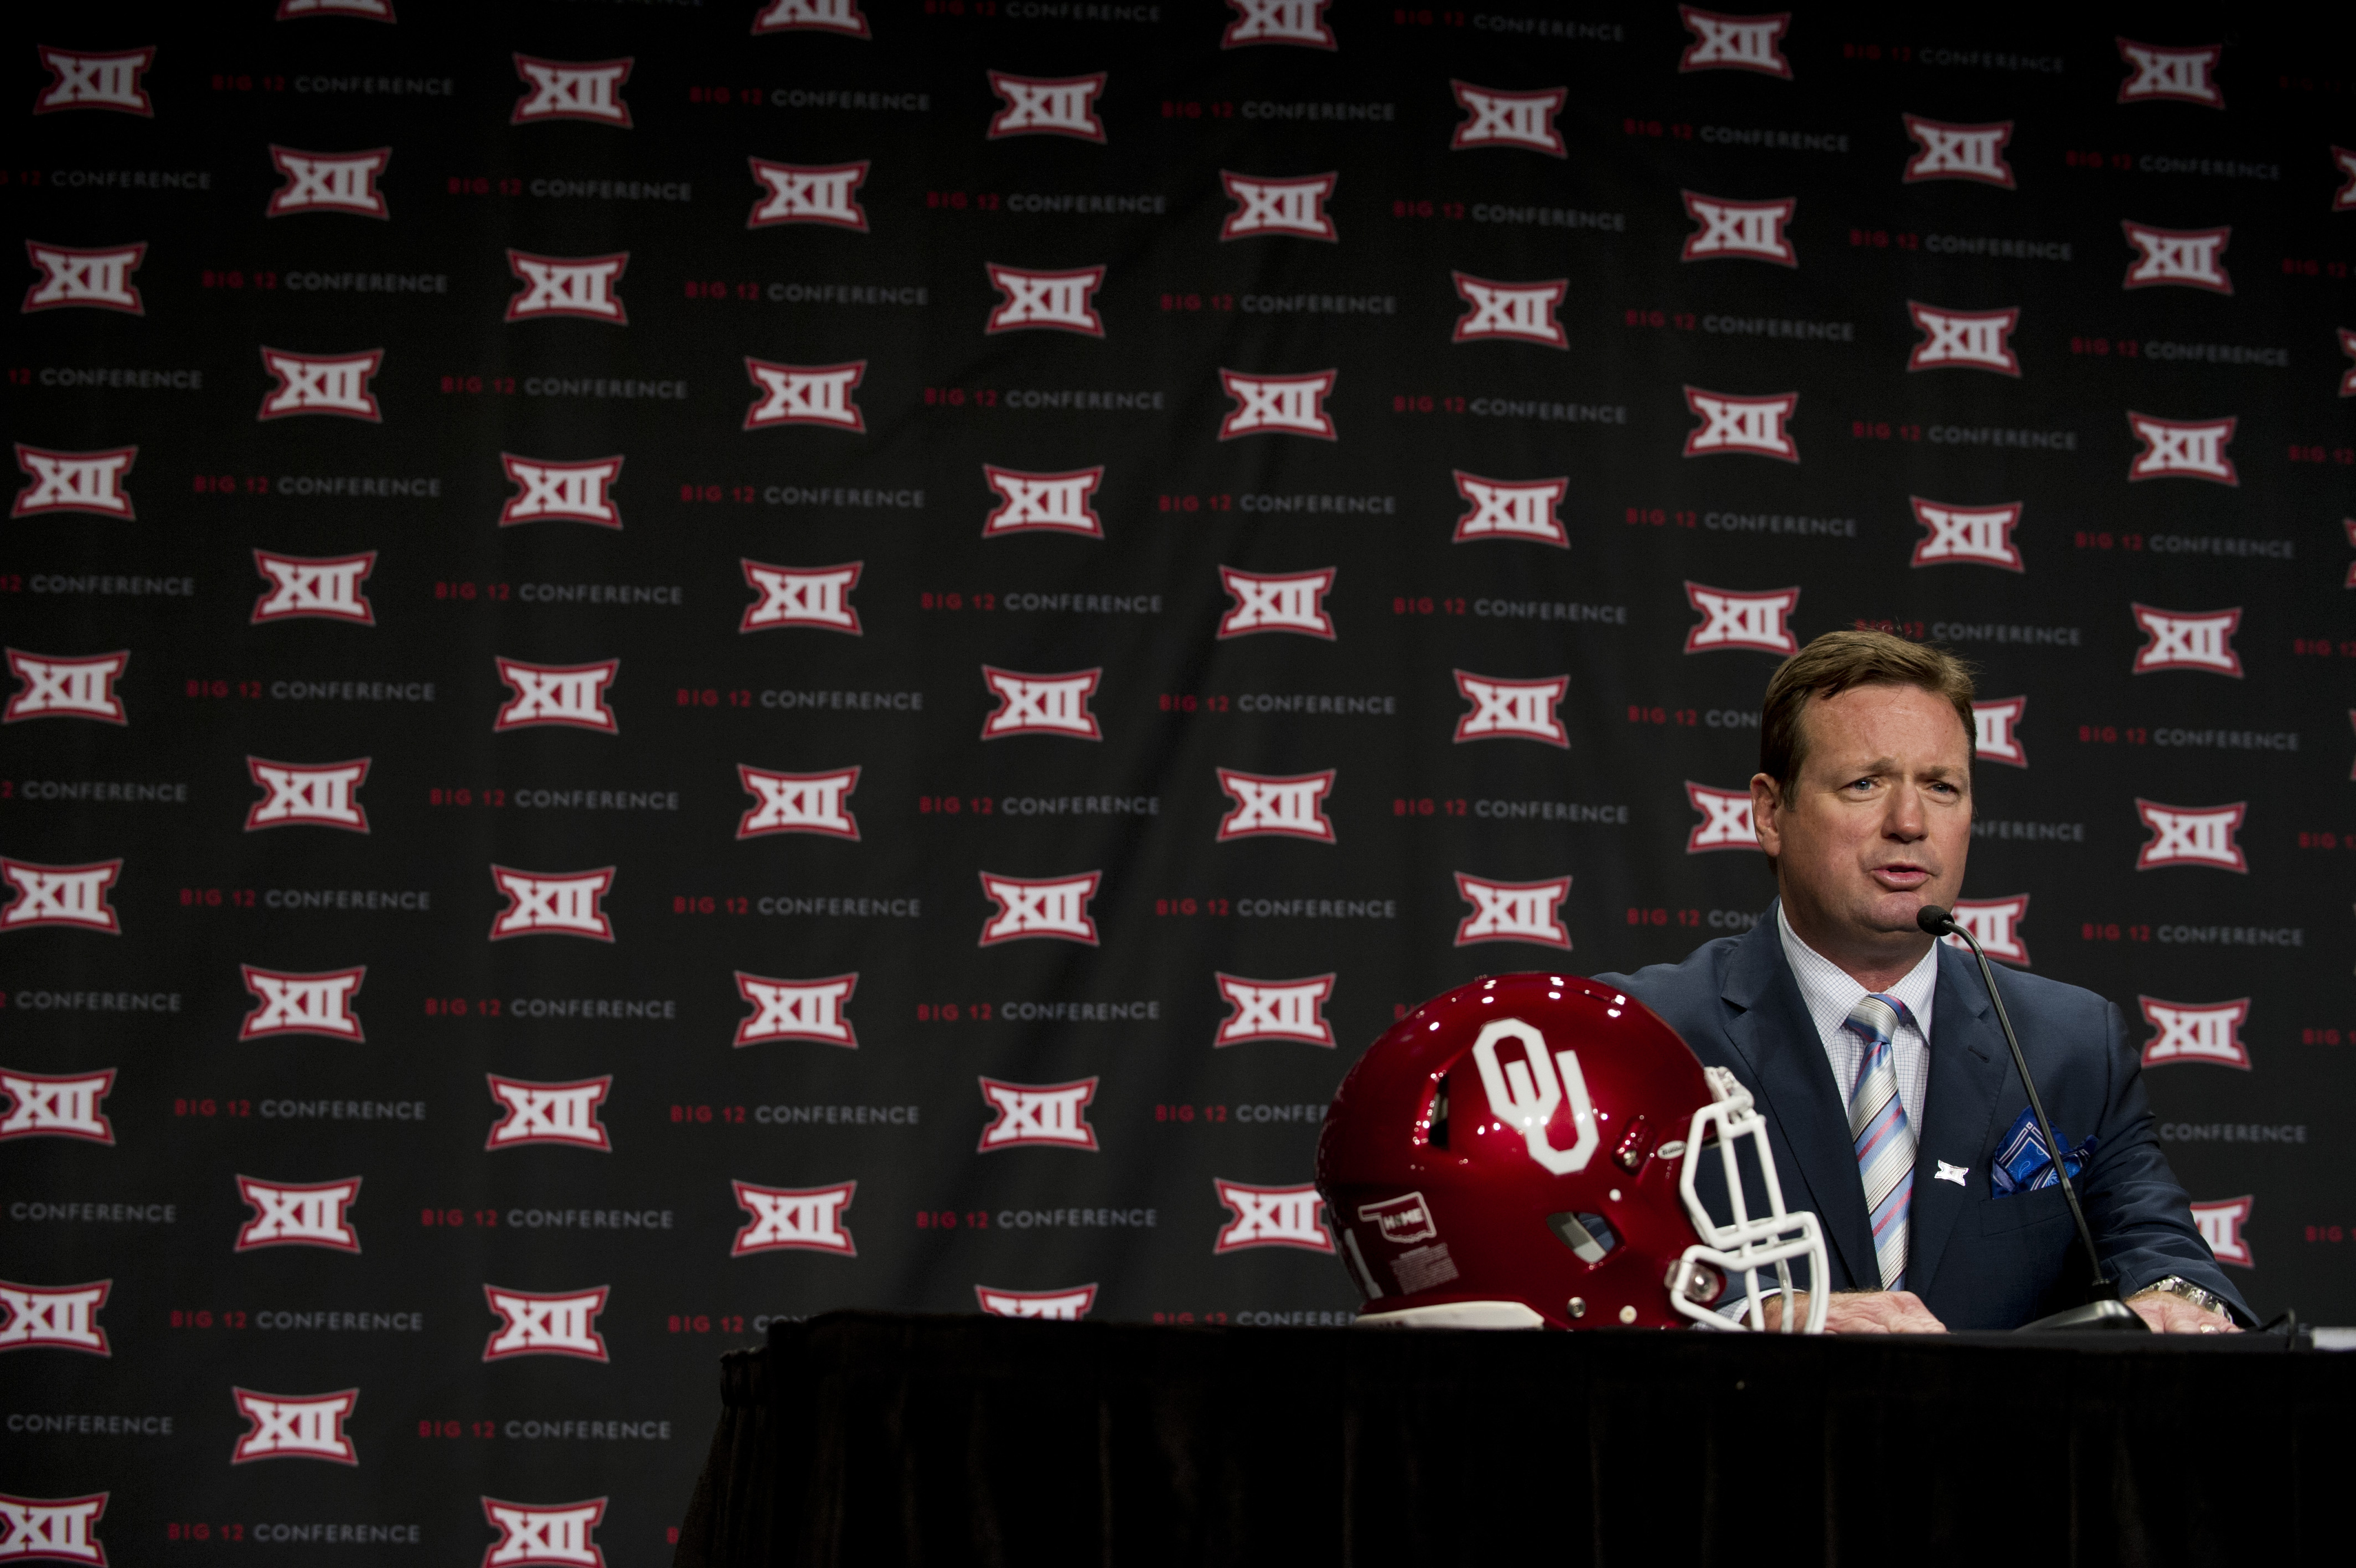 Sooners head coach Bob Stoops will have to decide which side of the ball is best for Dalton Rodriguez after he ditched Oklahoma to play defense in Tulsa.